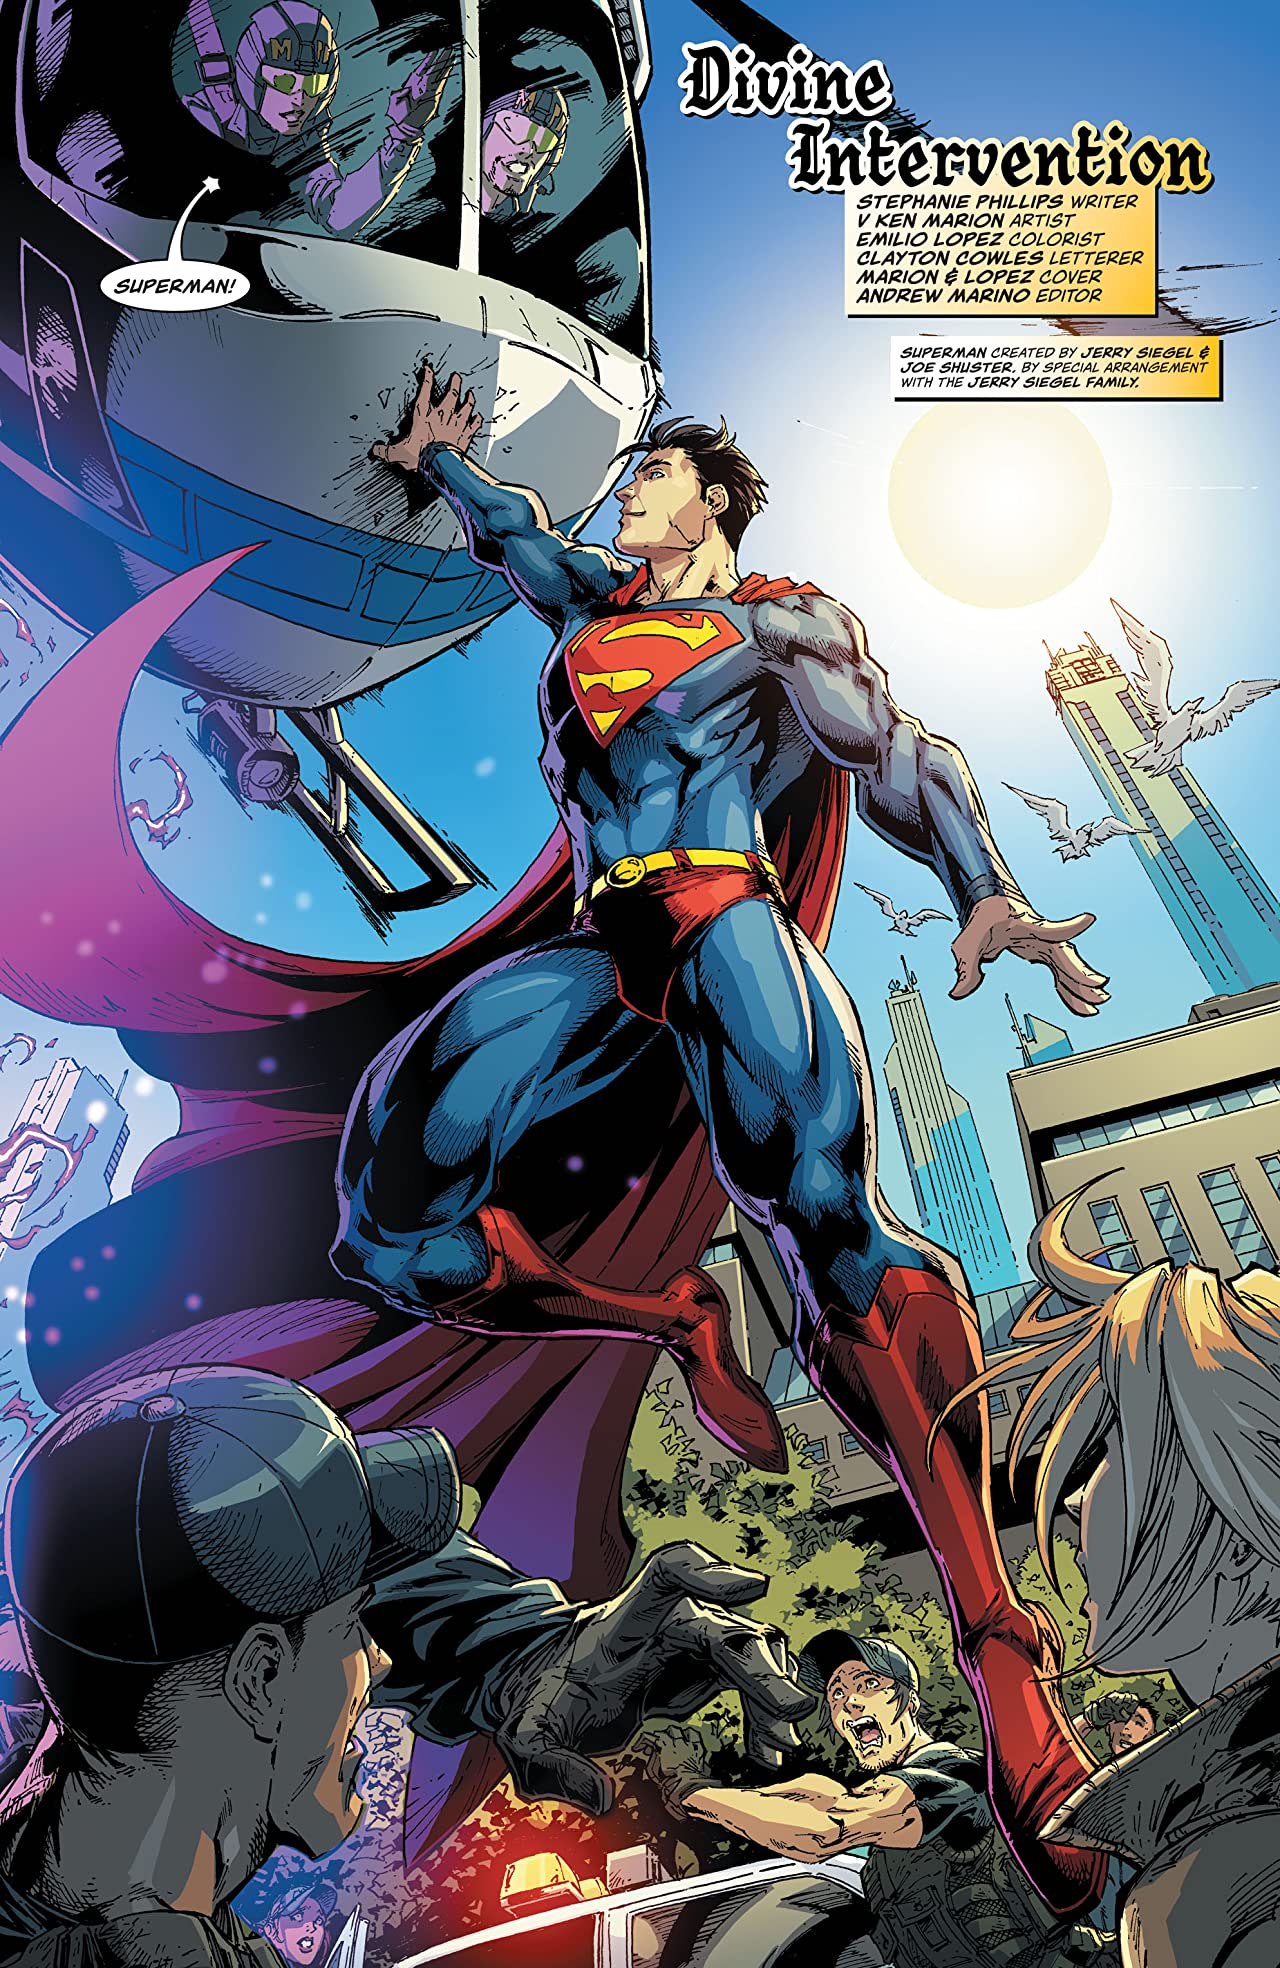 Superman: Man of Tomorrow #17